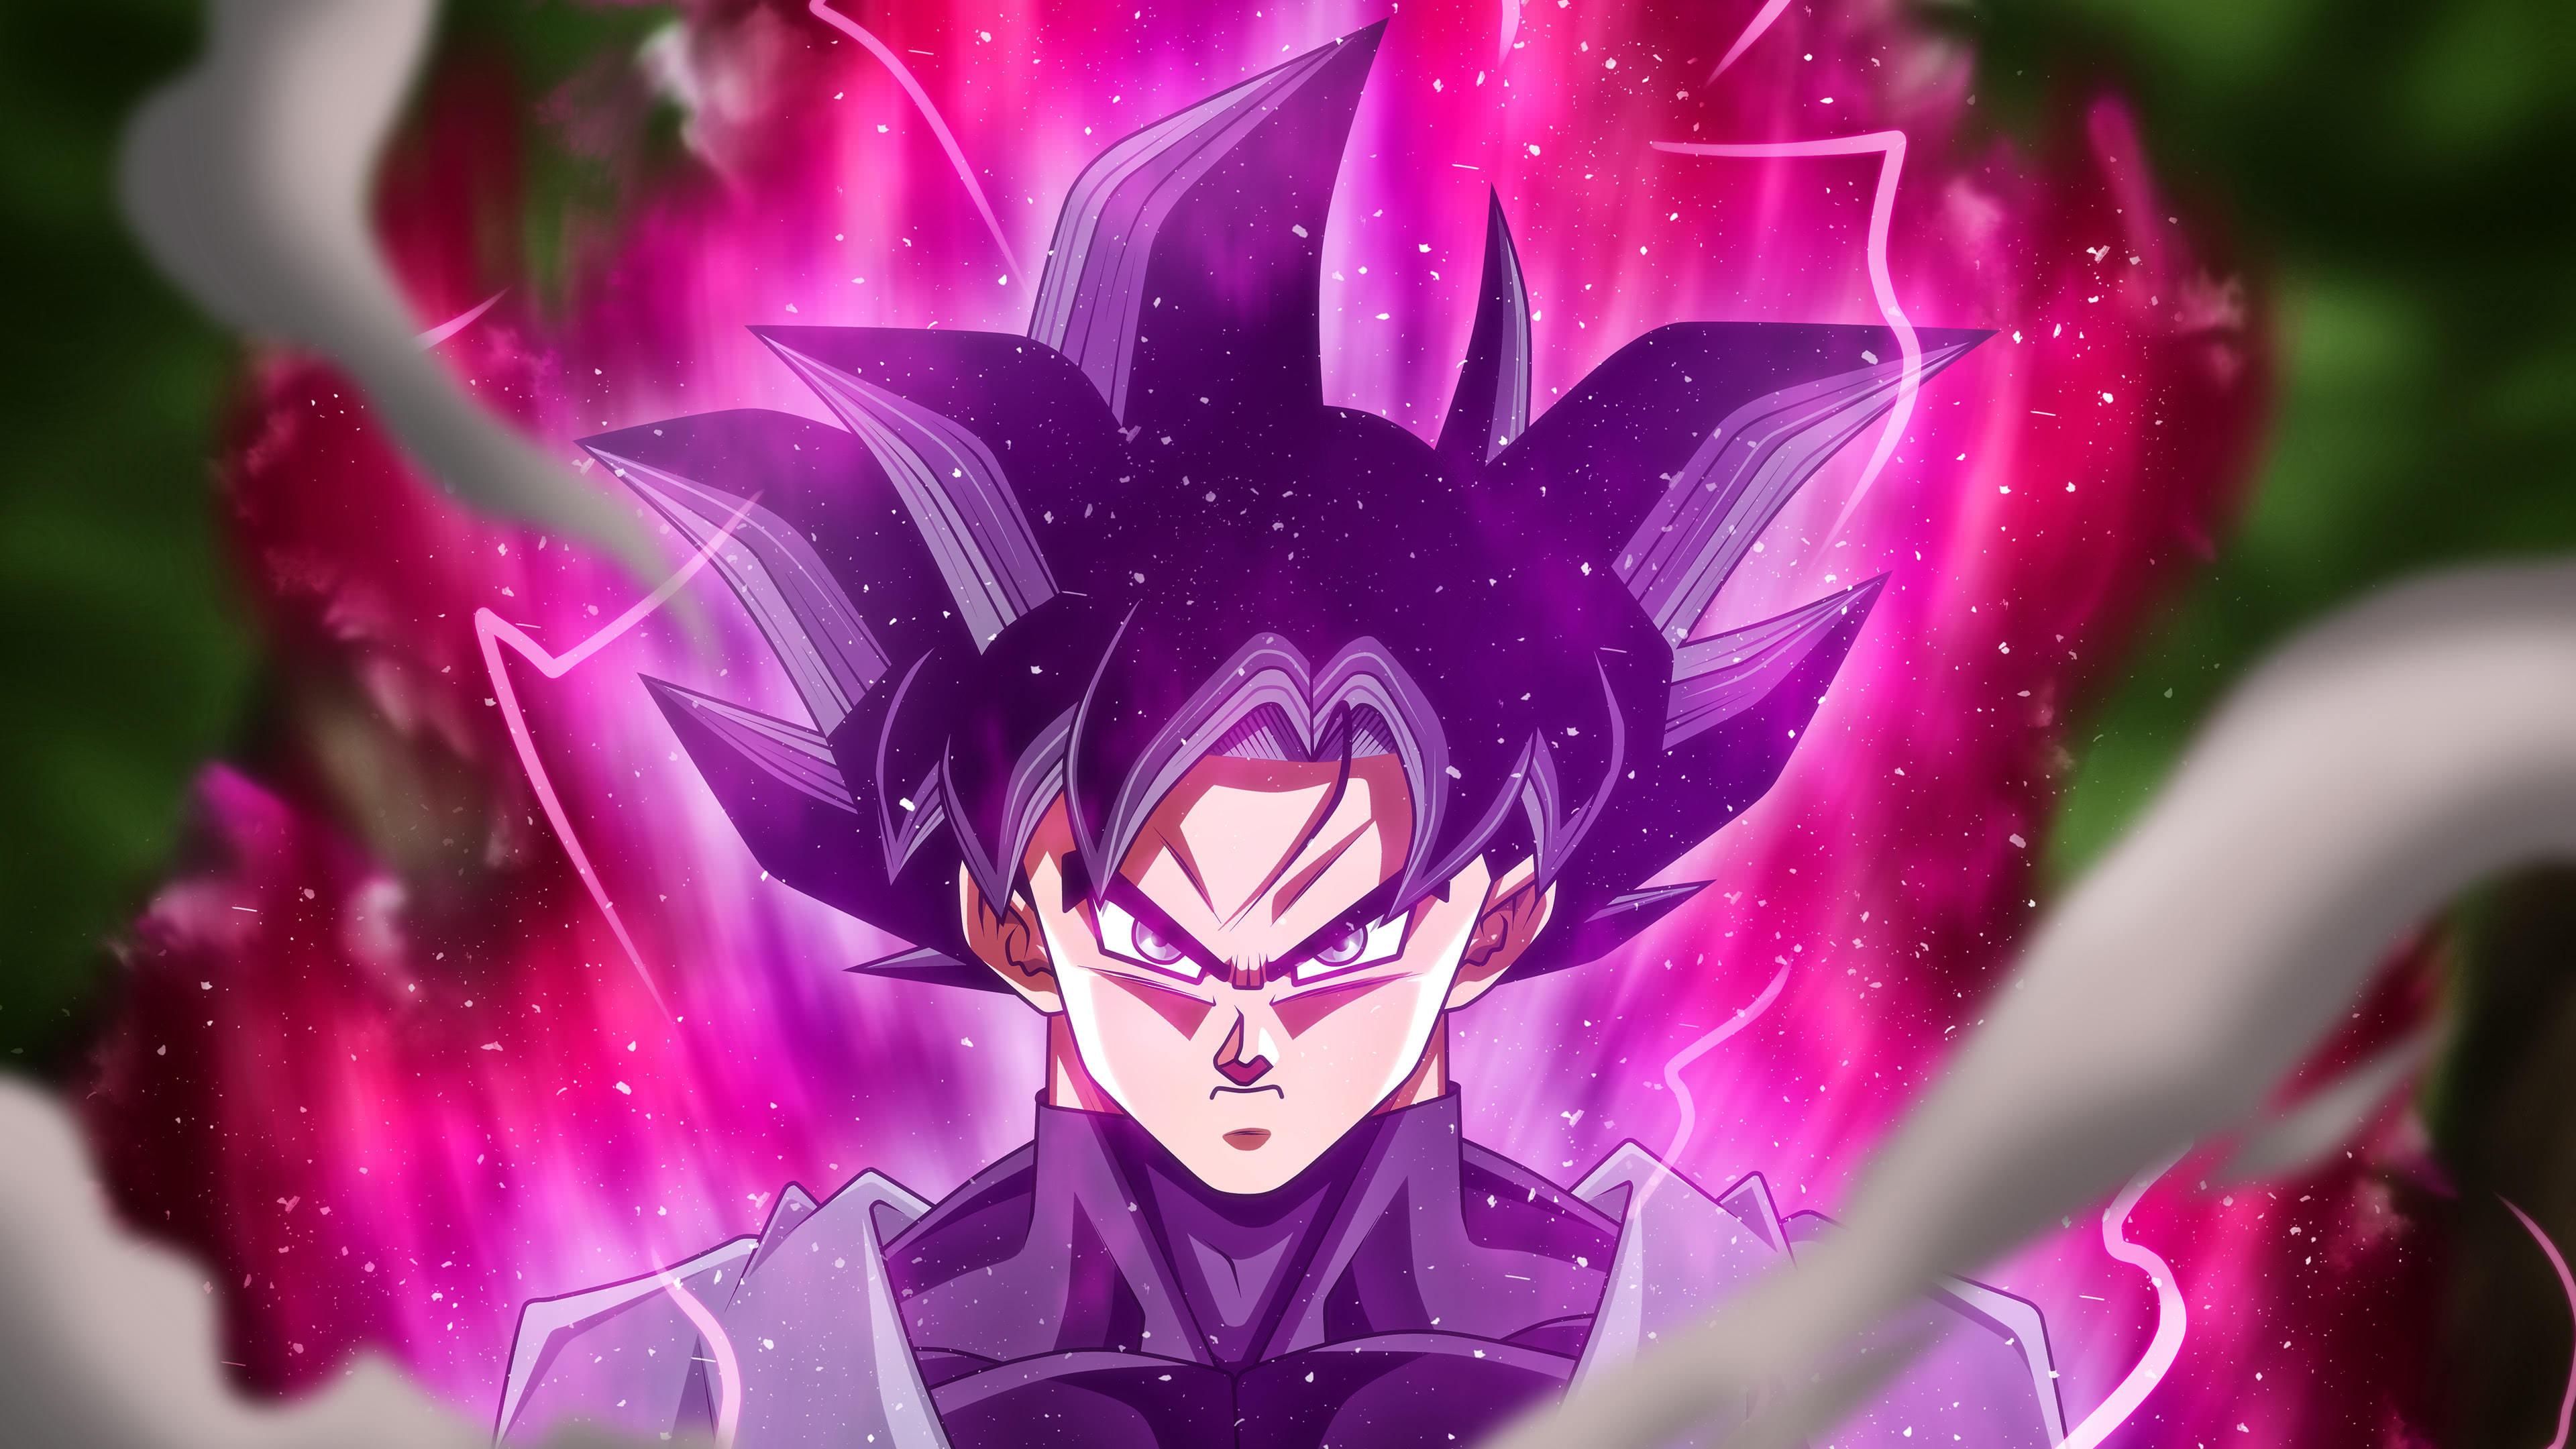 Dragon Ball Goku Black Portrait Uhd 4k Wallpaper Pixelz